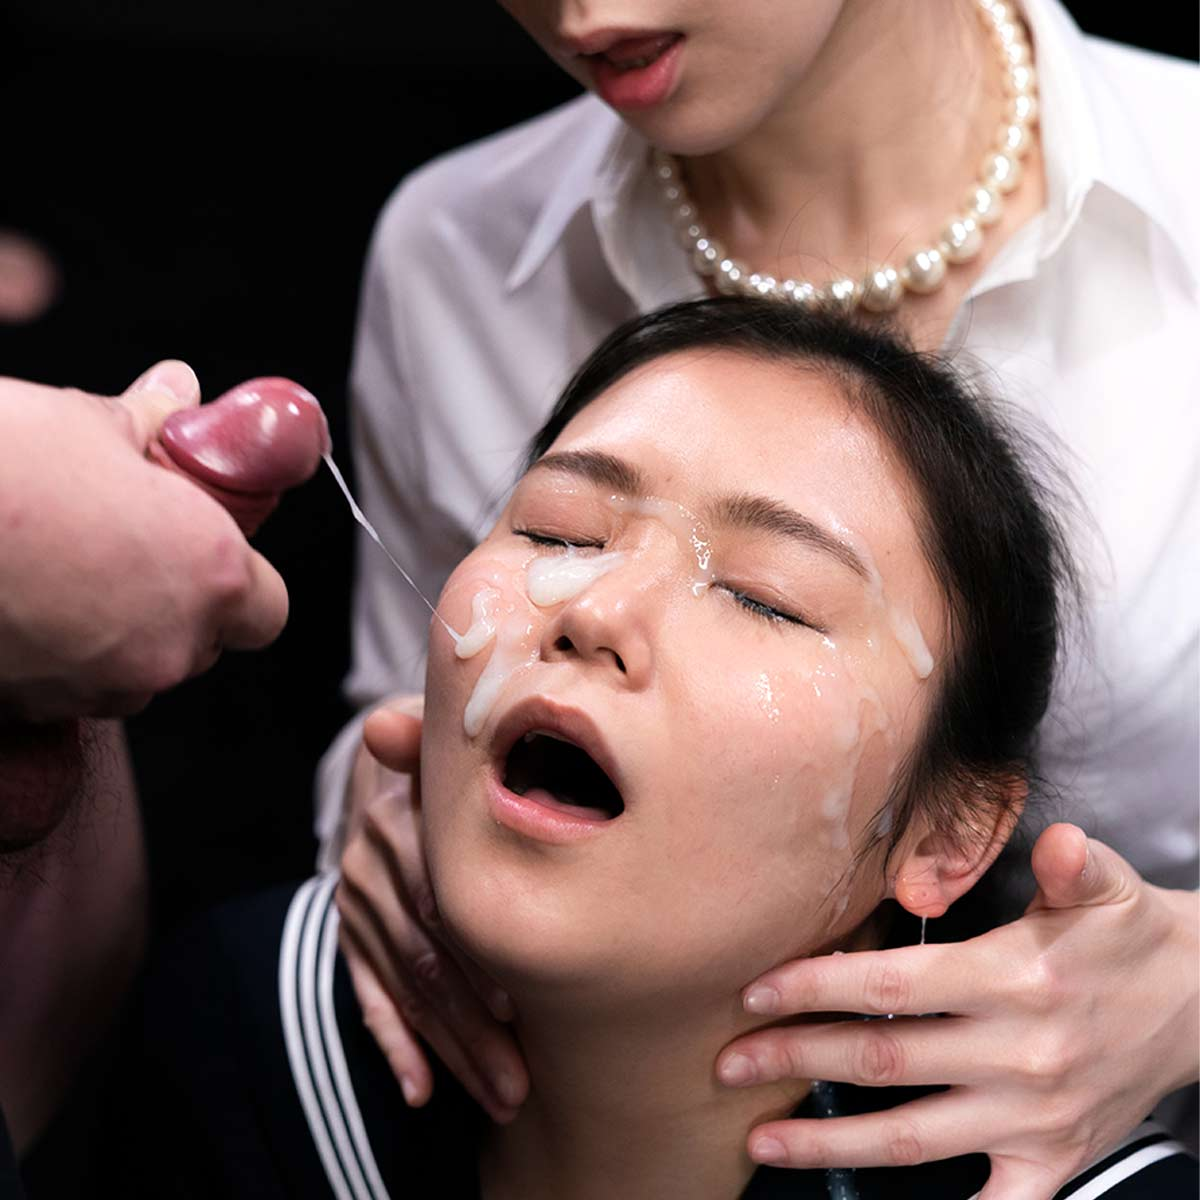 Miku Aida and An Hayase enjoy a Facial Bukkake with Snowballing and Cum swapping in an uncensored Spermmania video,